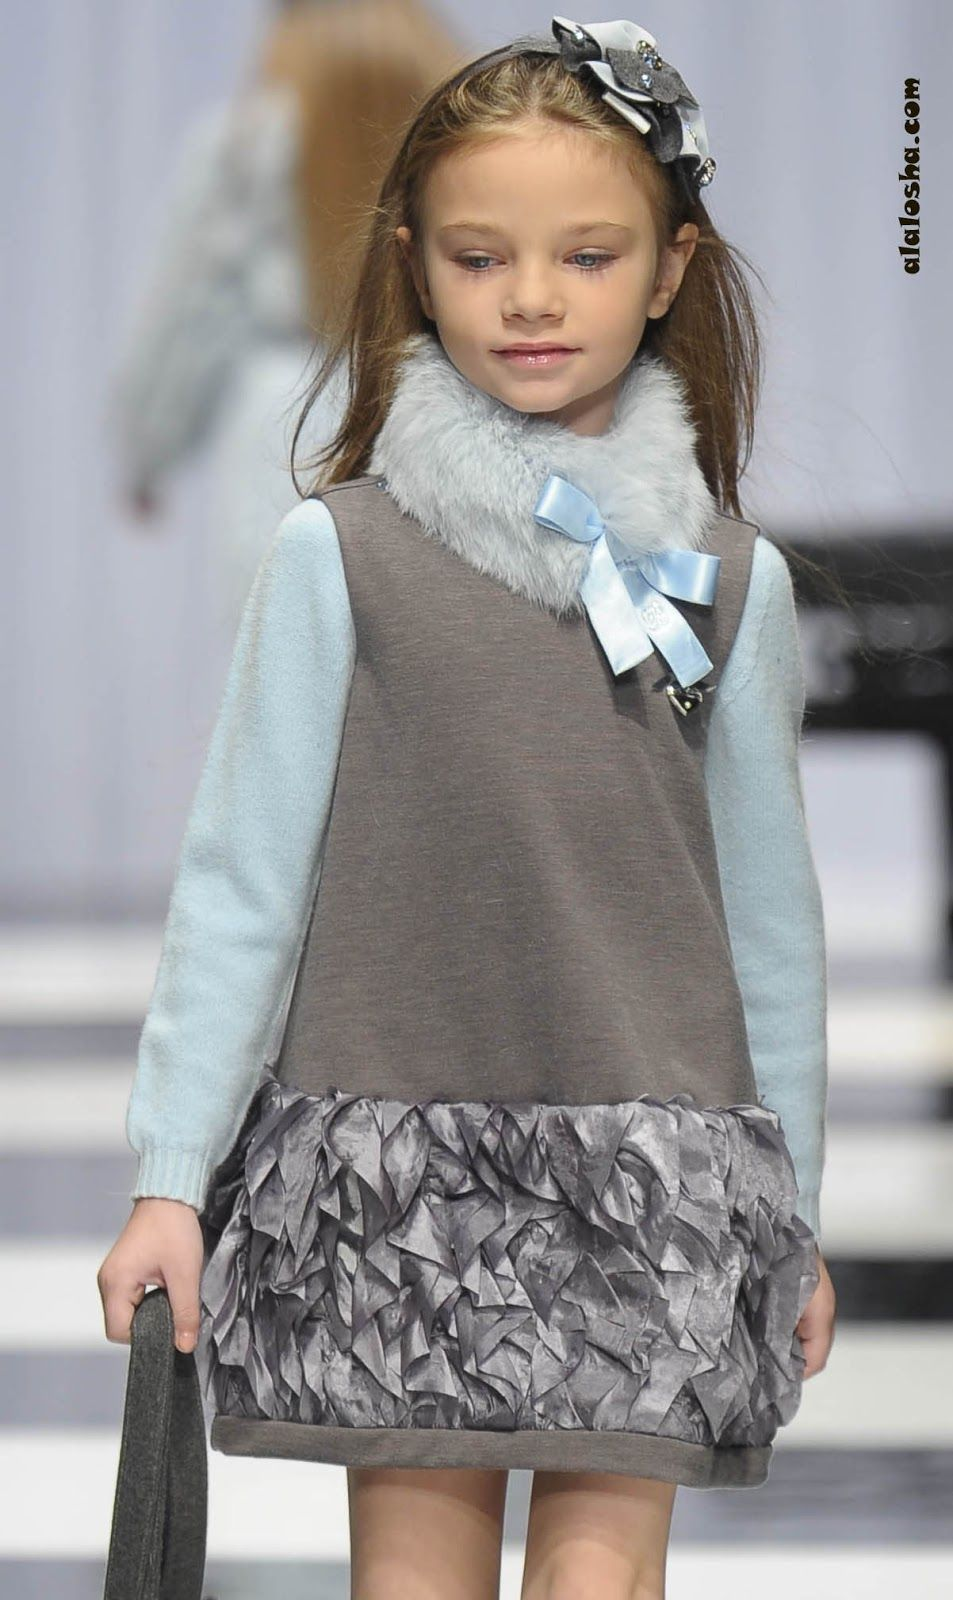 Alalosha Vogue Enfants Child Model Of The Day Lёlya: ALALOSHA: VOGUE ENFANTS: Let It Fur !